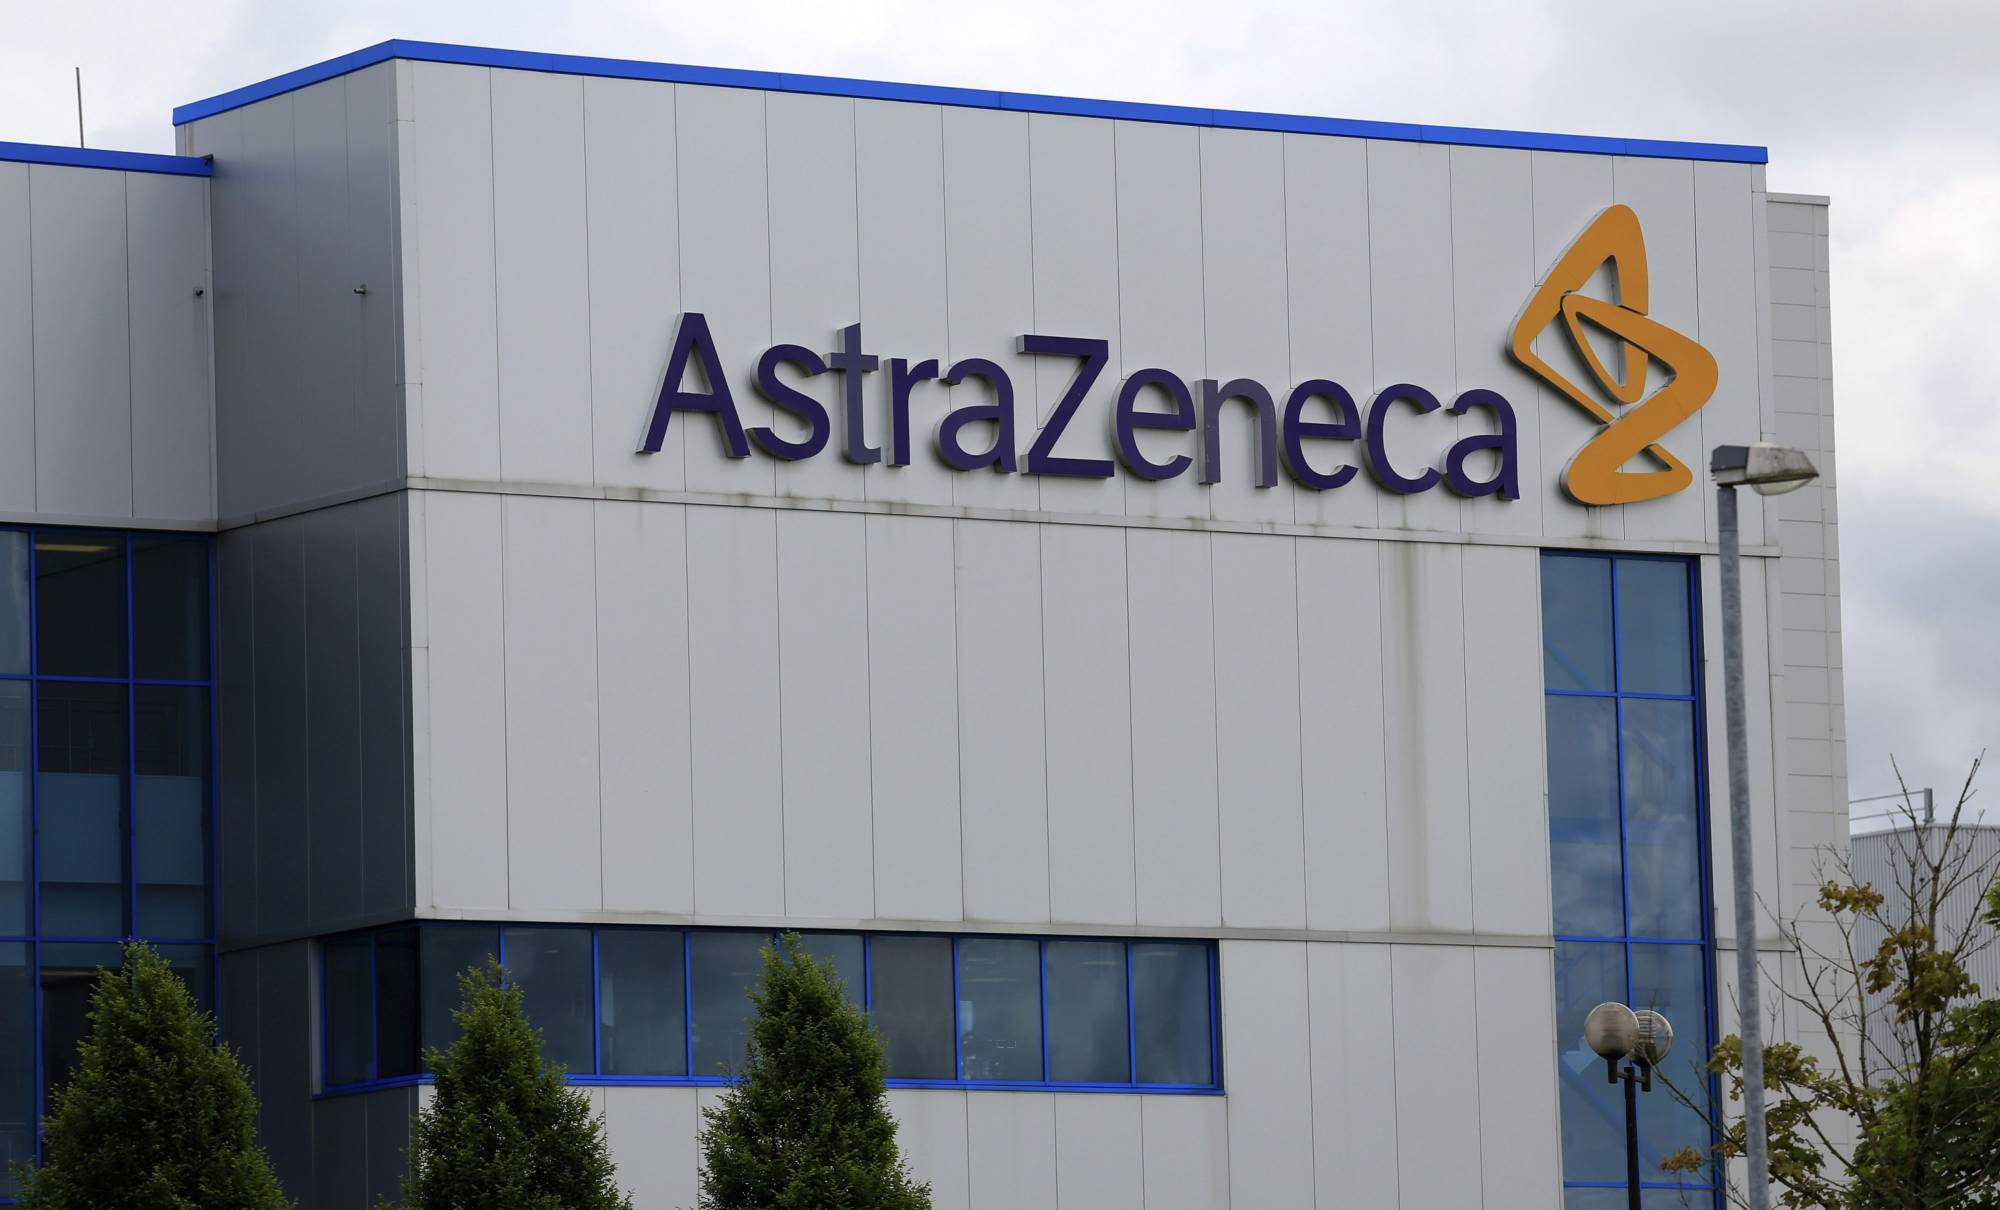 The most interesting of the COVID-19 mAbs could be AstraZeneca's AZD7442, which just reported some impressive late-stage trial results. | BLOOMBERG